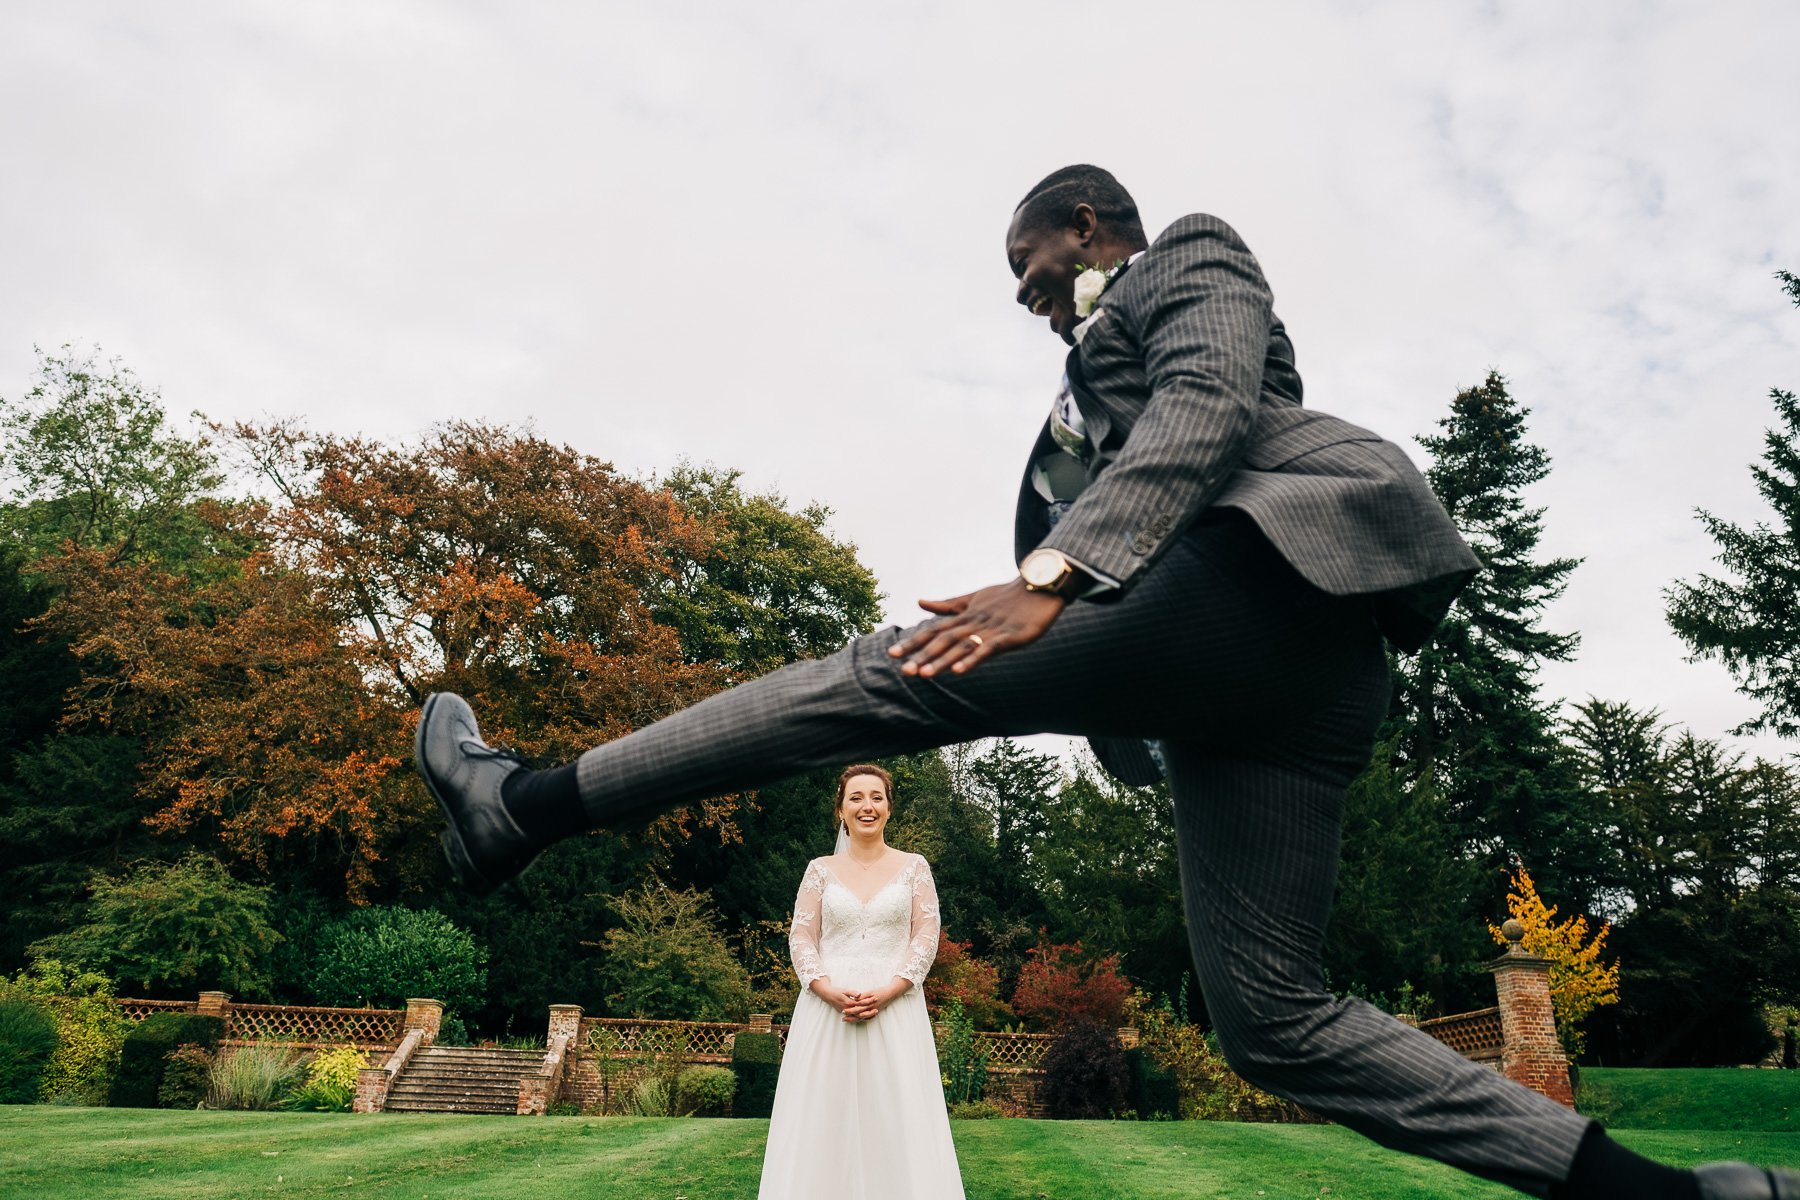 Groom jumping over bride